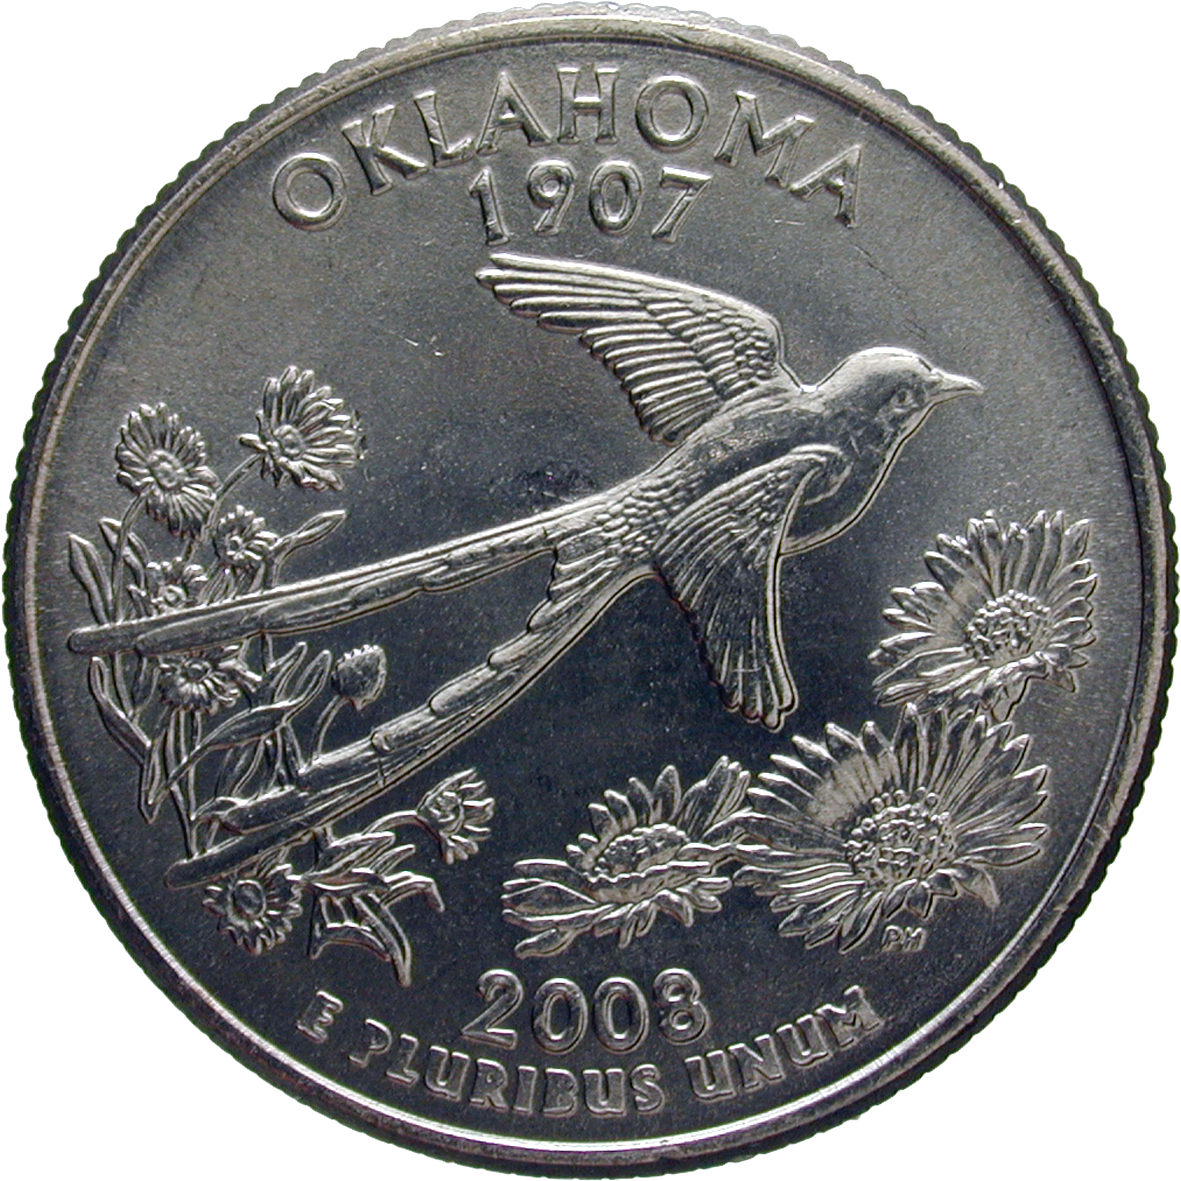 United States of America, Quarter Dollar 2008 (reverse)